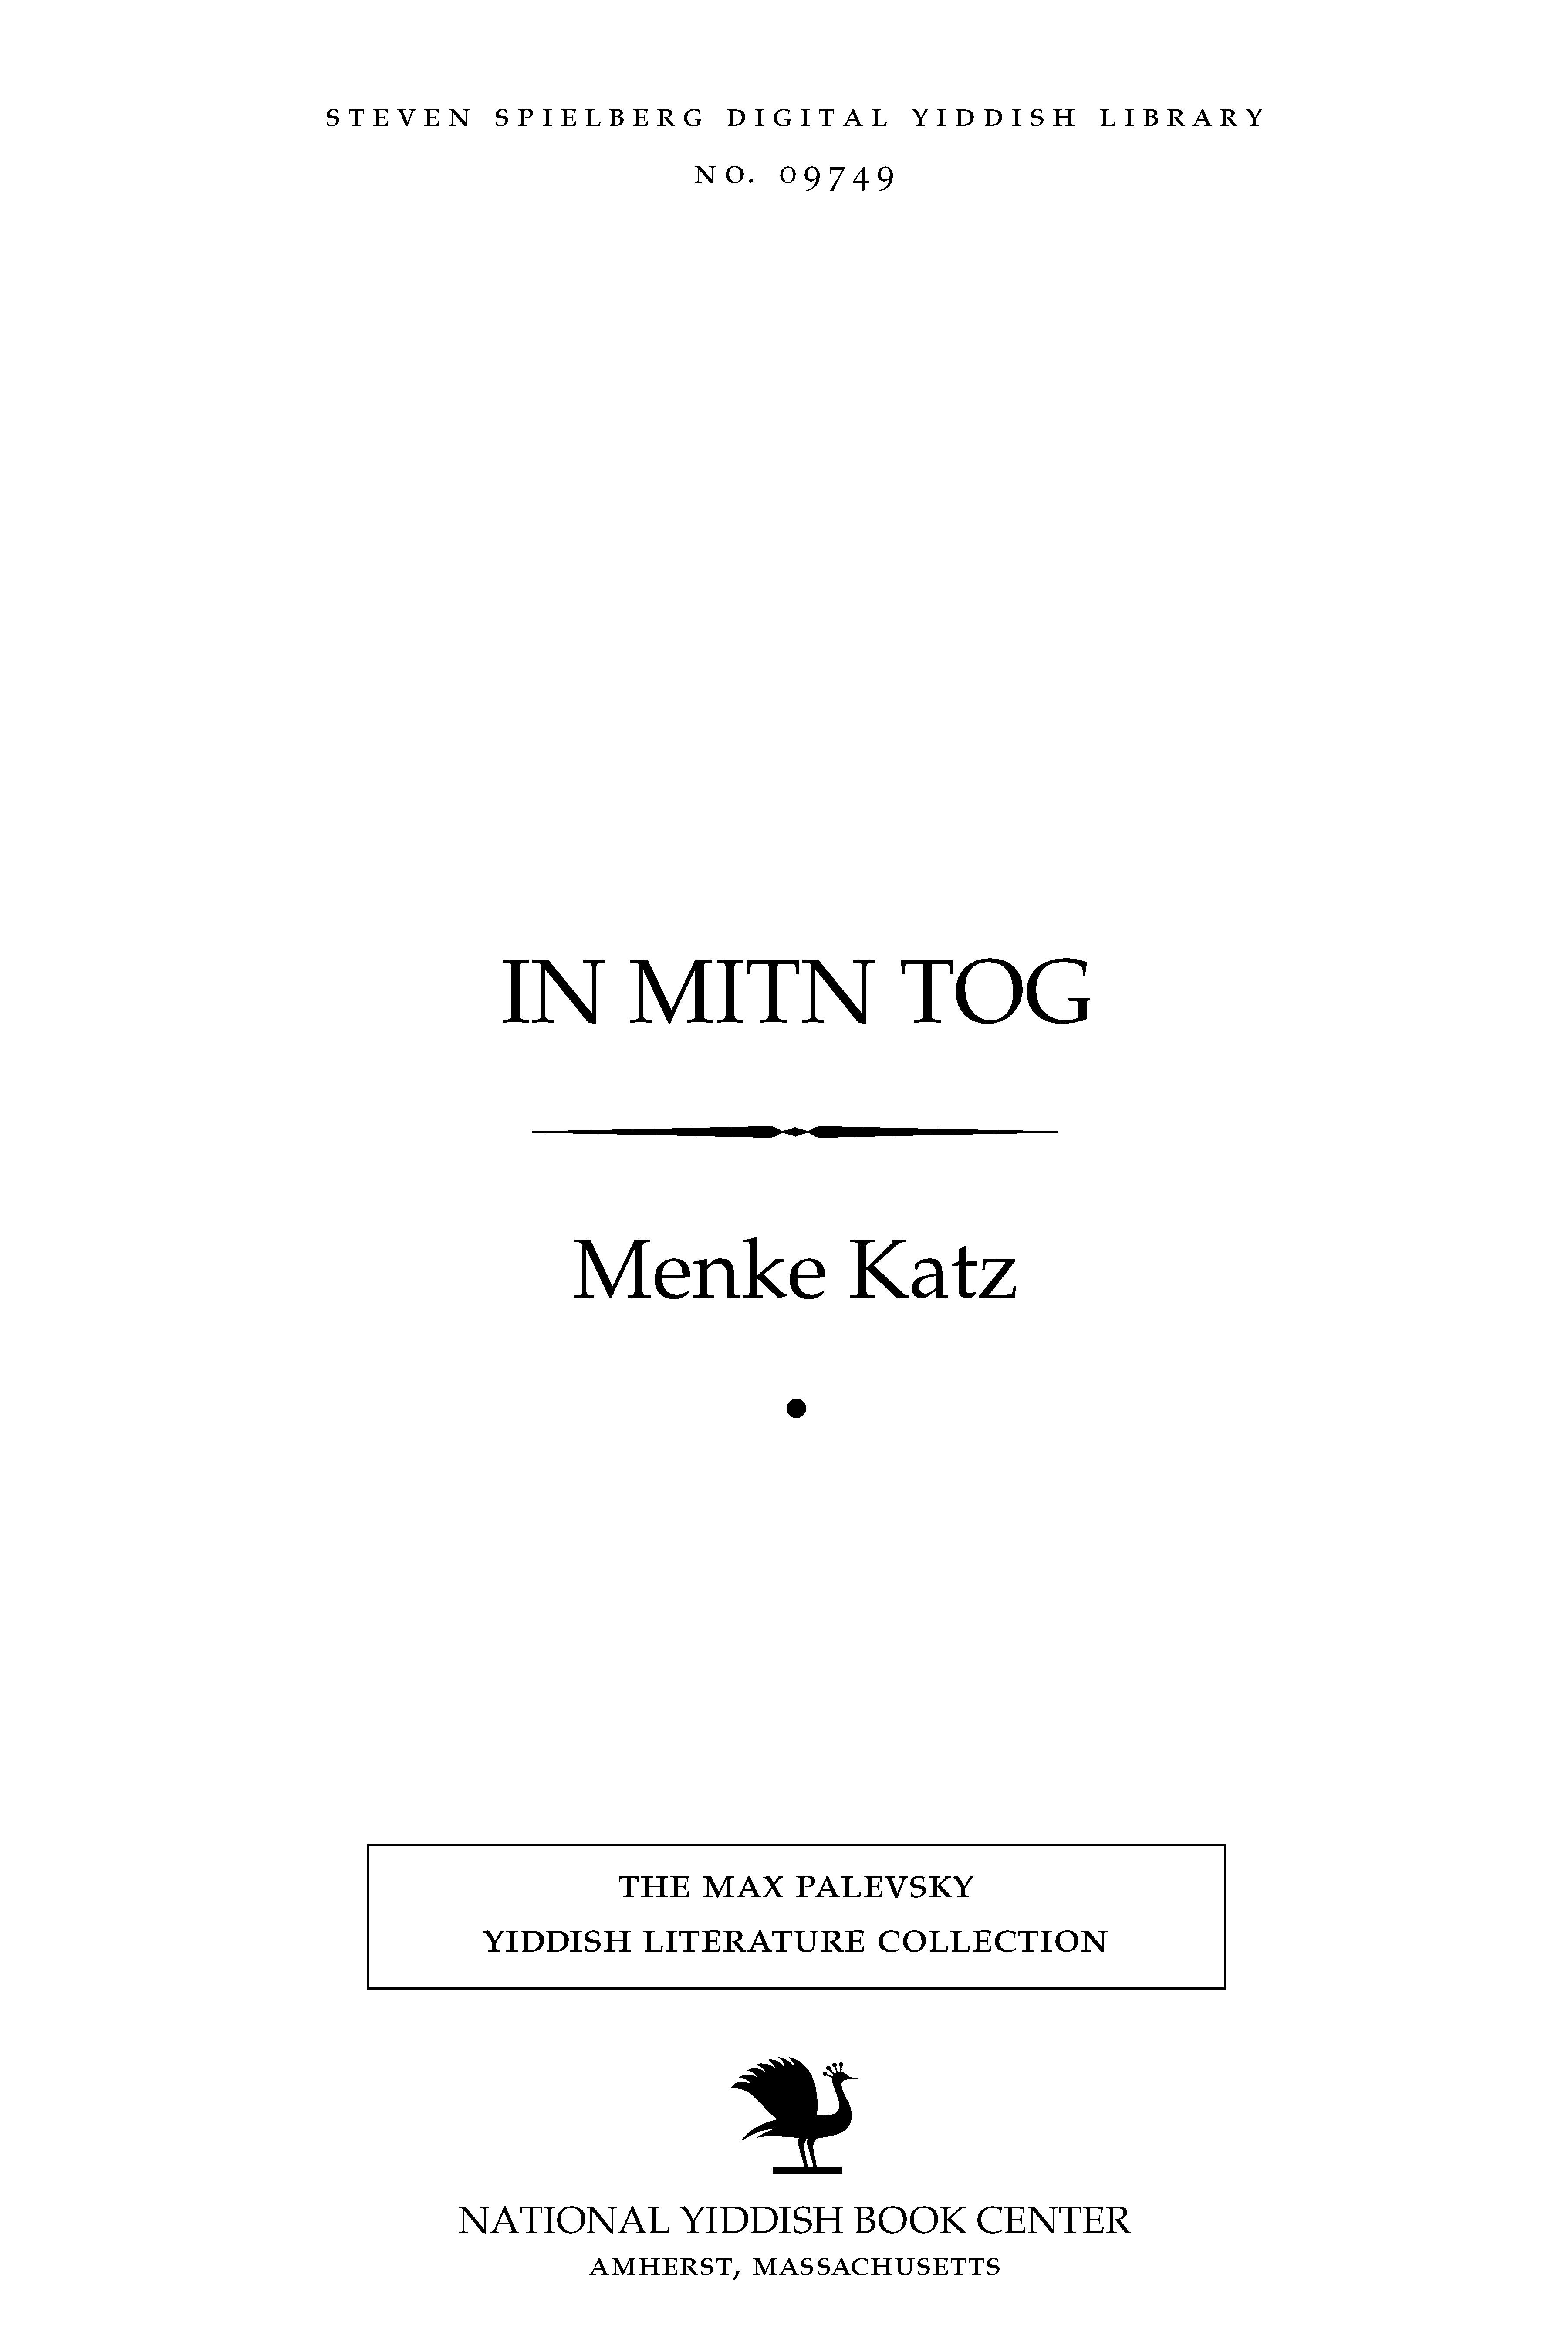 In miṭn ṭog by Menke Katz